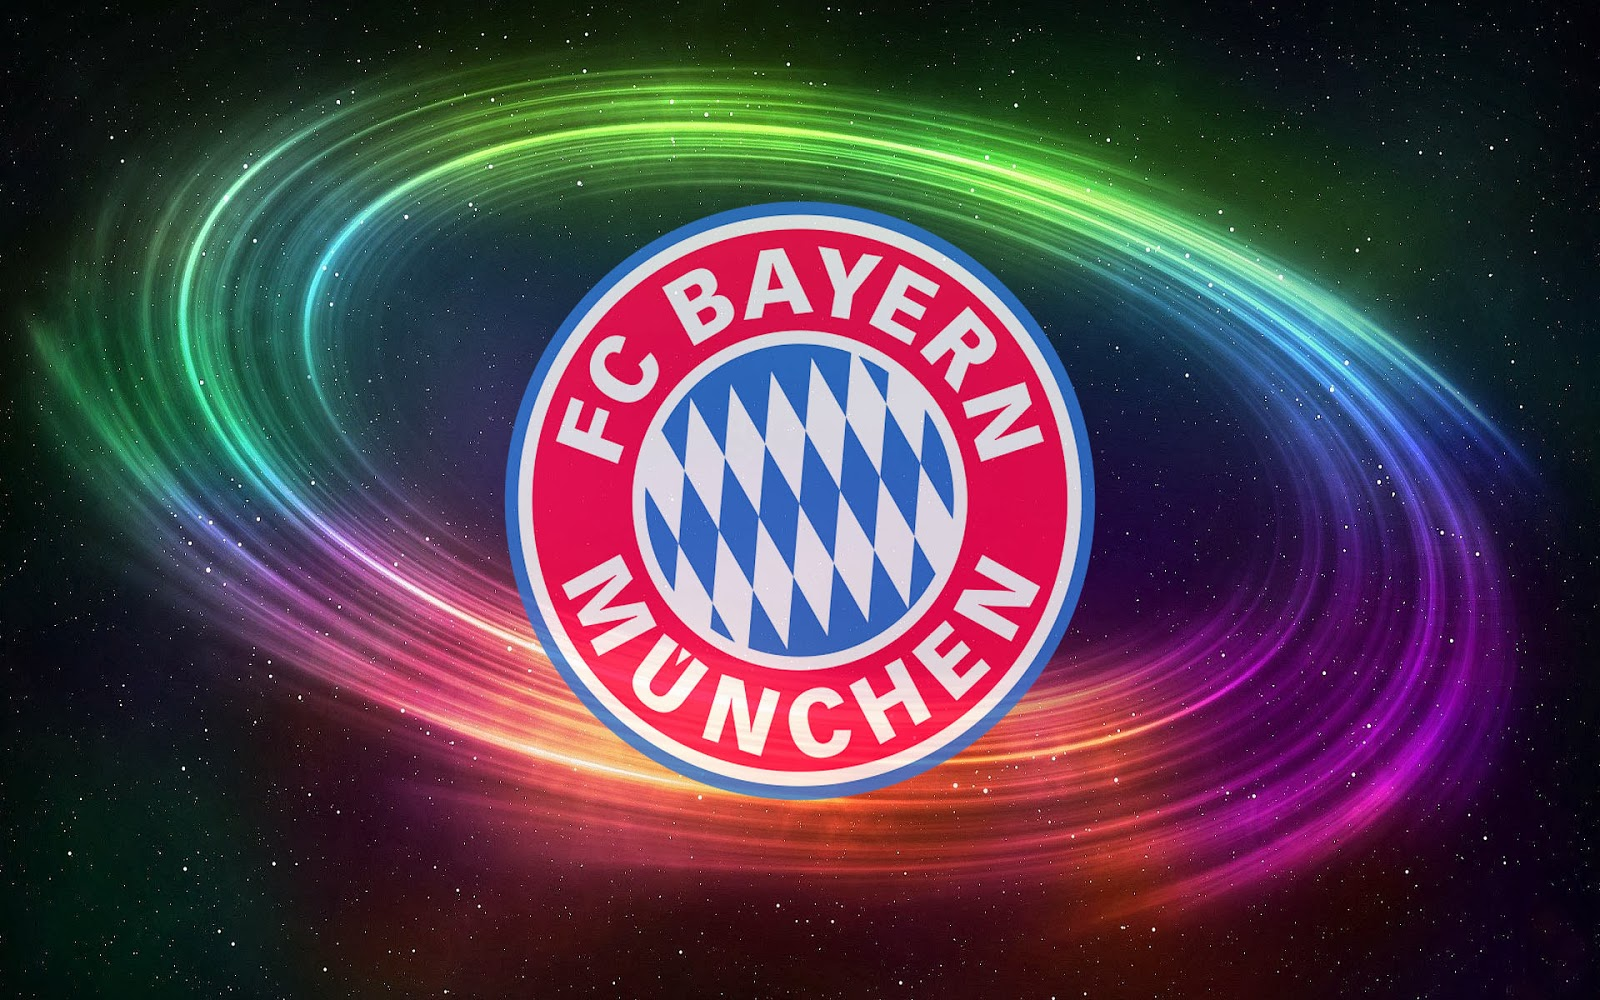 fc bayern munich wallpaper wallpapersafari. Black Bedroom Furniture Sets. Home Design Ideas